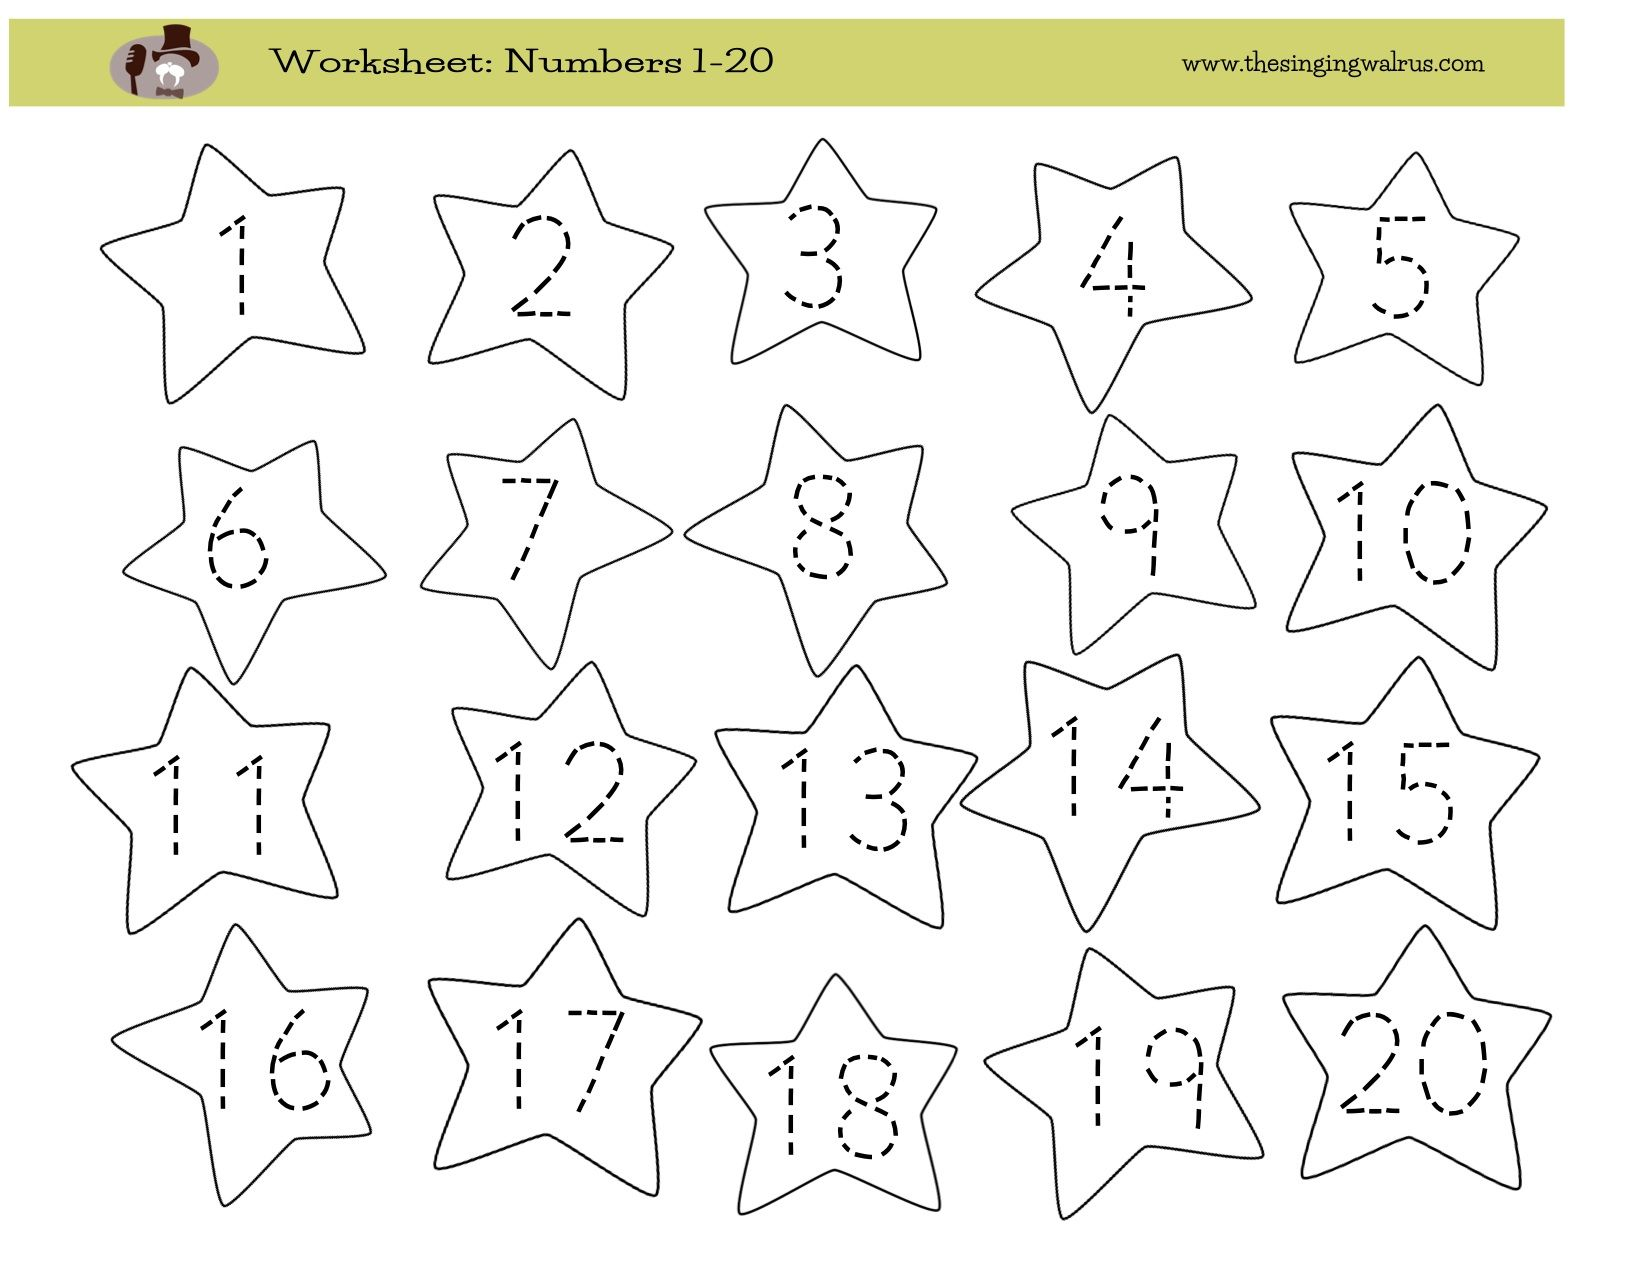 worksheet Worksheet Numbers 1 20 worksheet writing numbers 1 20 jpg prek pinterest jpg